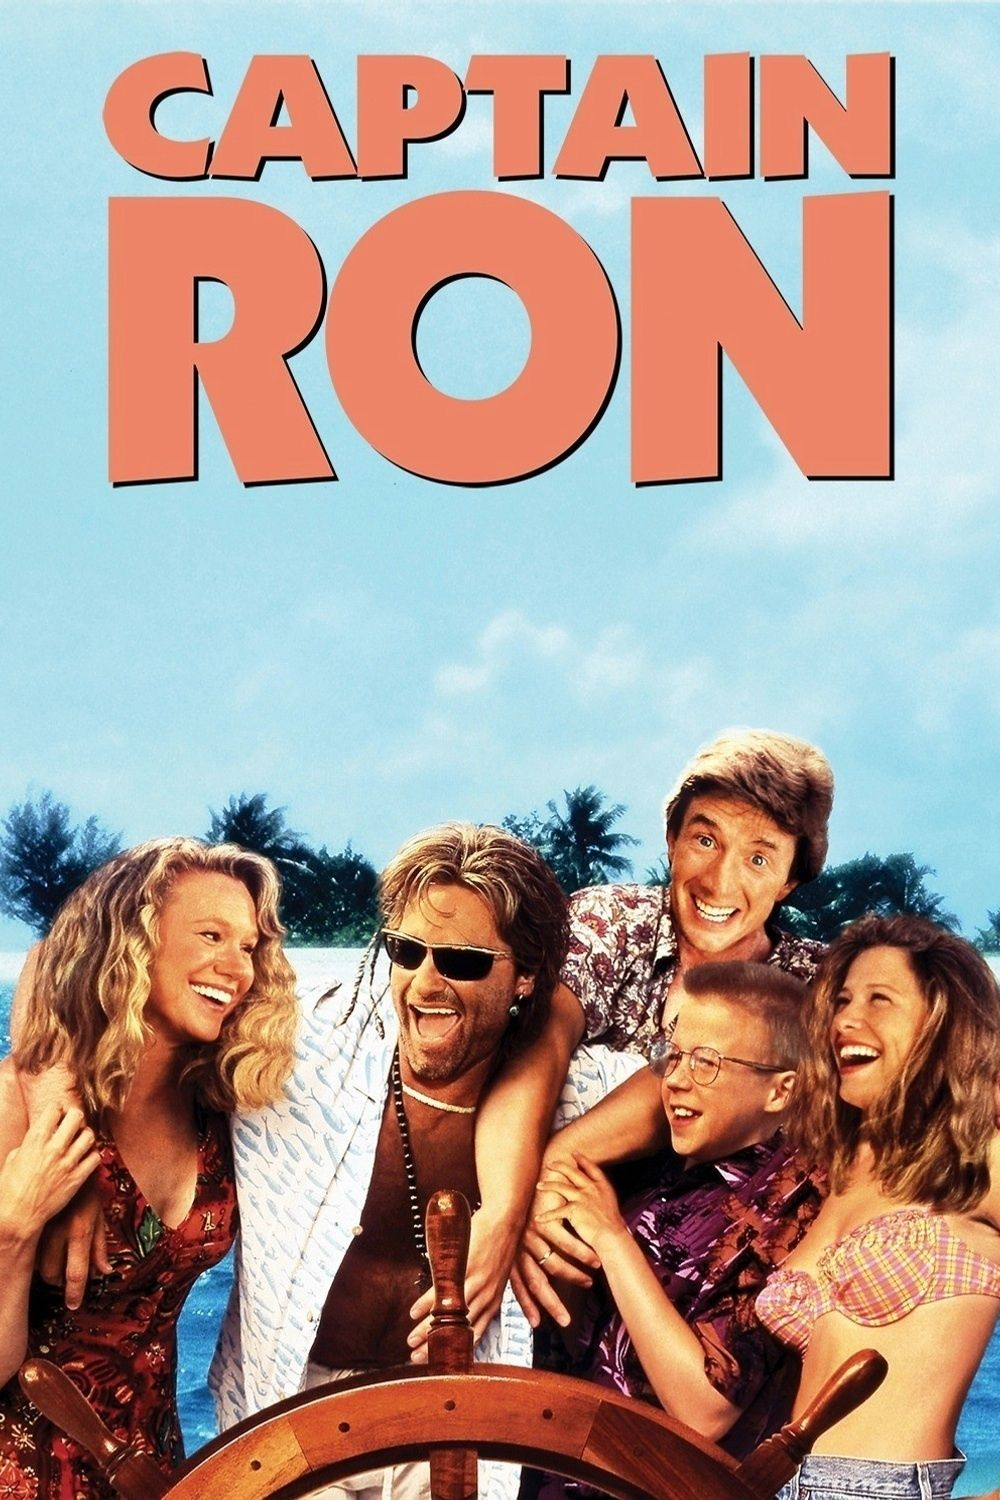 Captain Ron 1992 This Movie Makes Me Laugh Every Time Best Quote It Shows Film 1 Captain Ron Movie Comedy Movies Movies